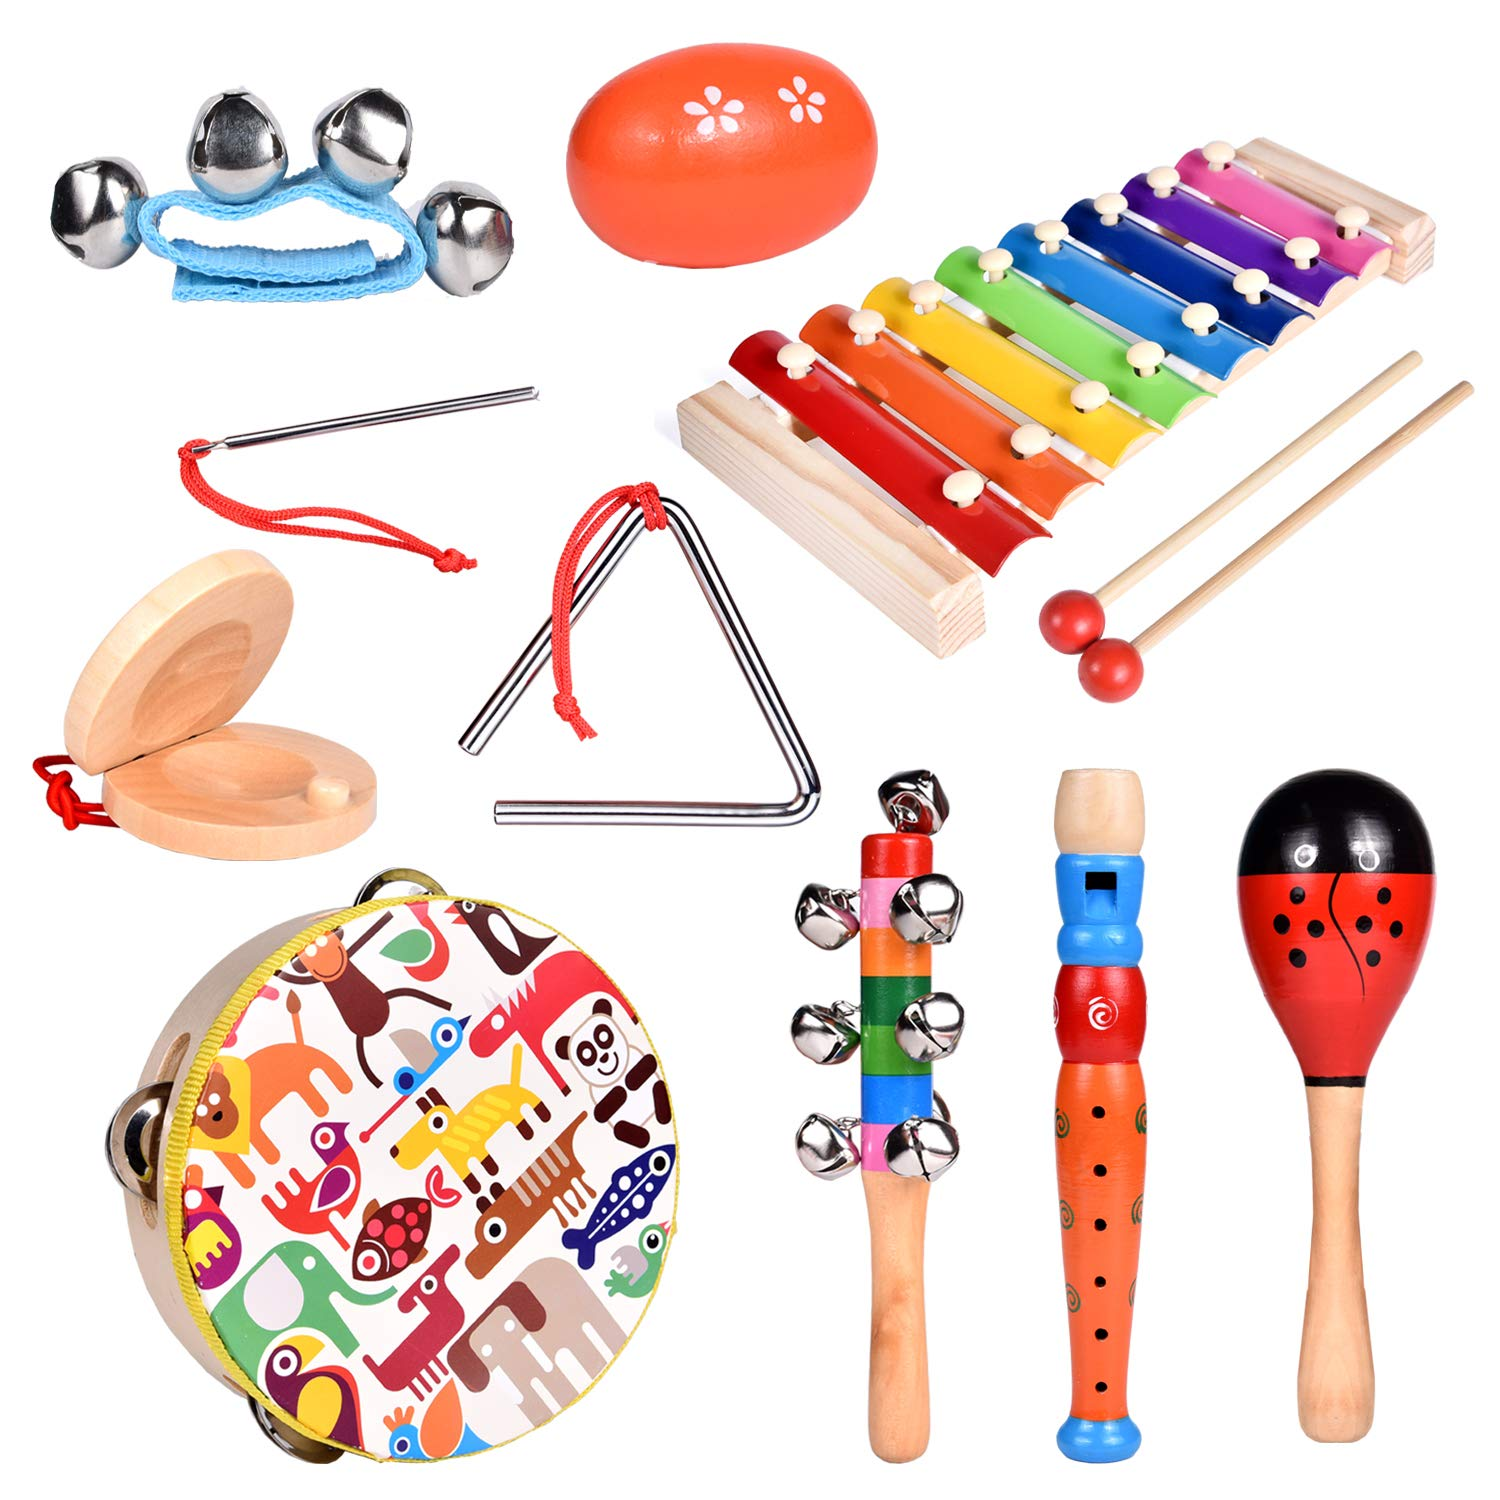 Toddler Musical Instrument Toy Set-12Pcs Wooden Percussion Toys Including Tambourine, Shaker Egg, Piccolo, Maracas and More for Kids Preschool Educational, Music Party Supplies by FUN LITTLE TOYS